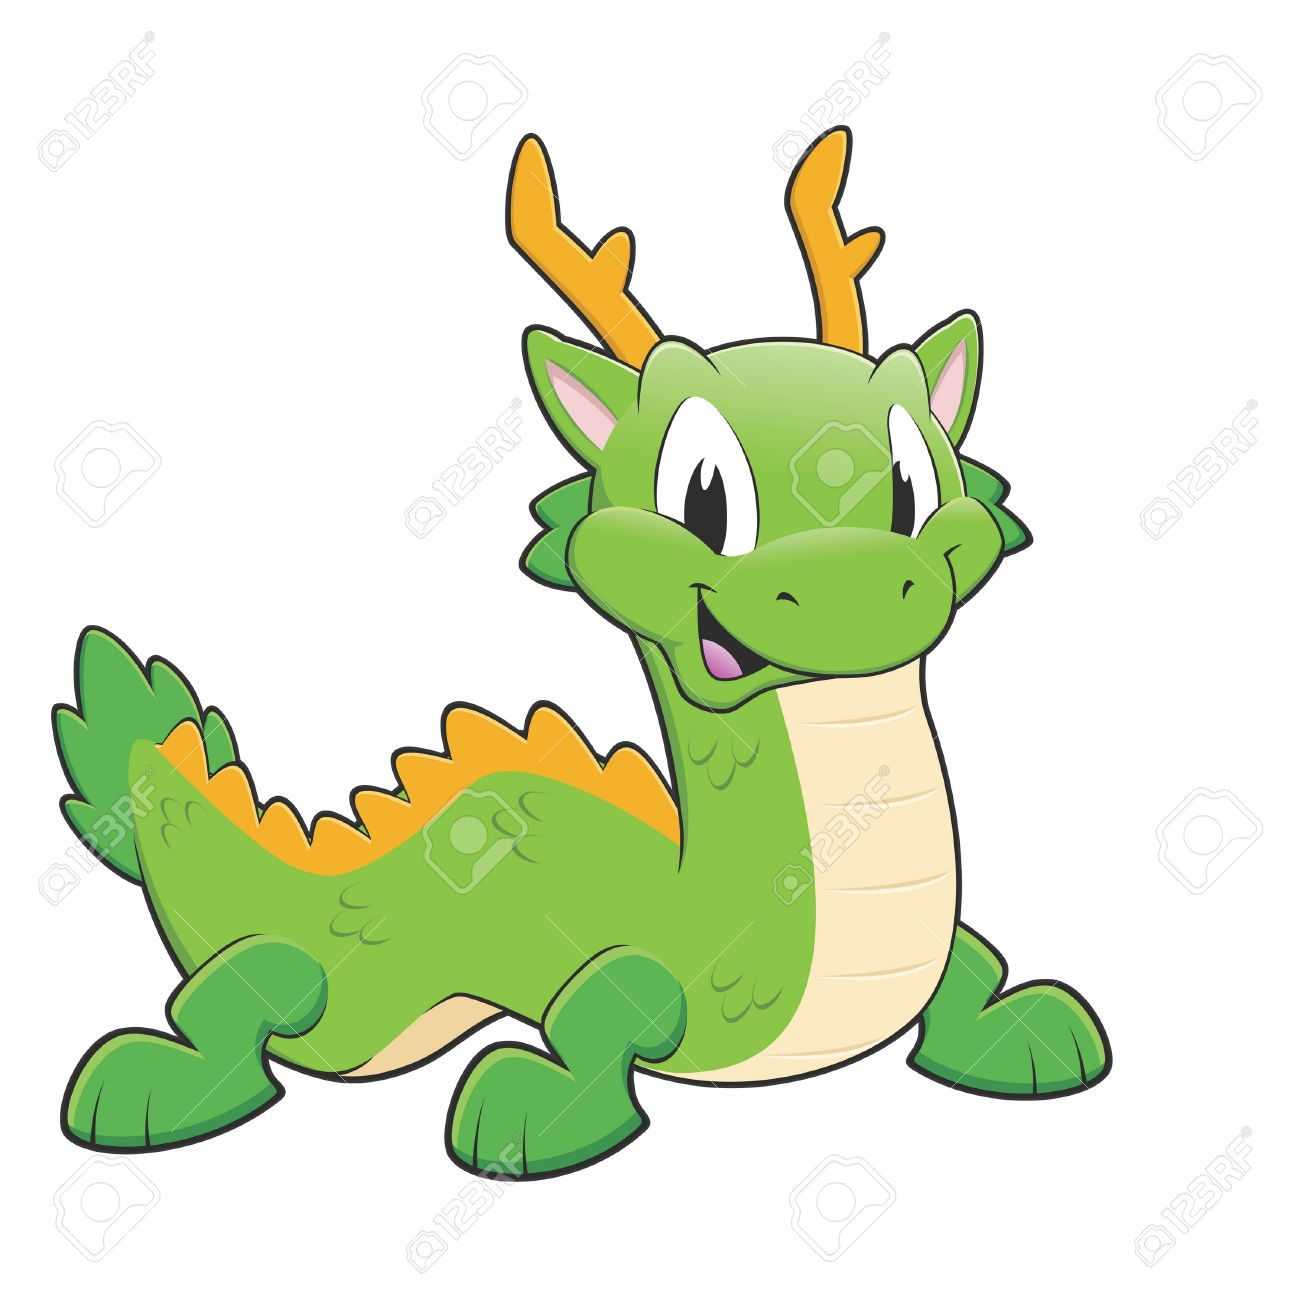 1300x1300 Vector Illustration Of A Green Chinese Dragon Royalty Free